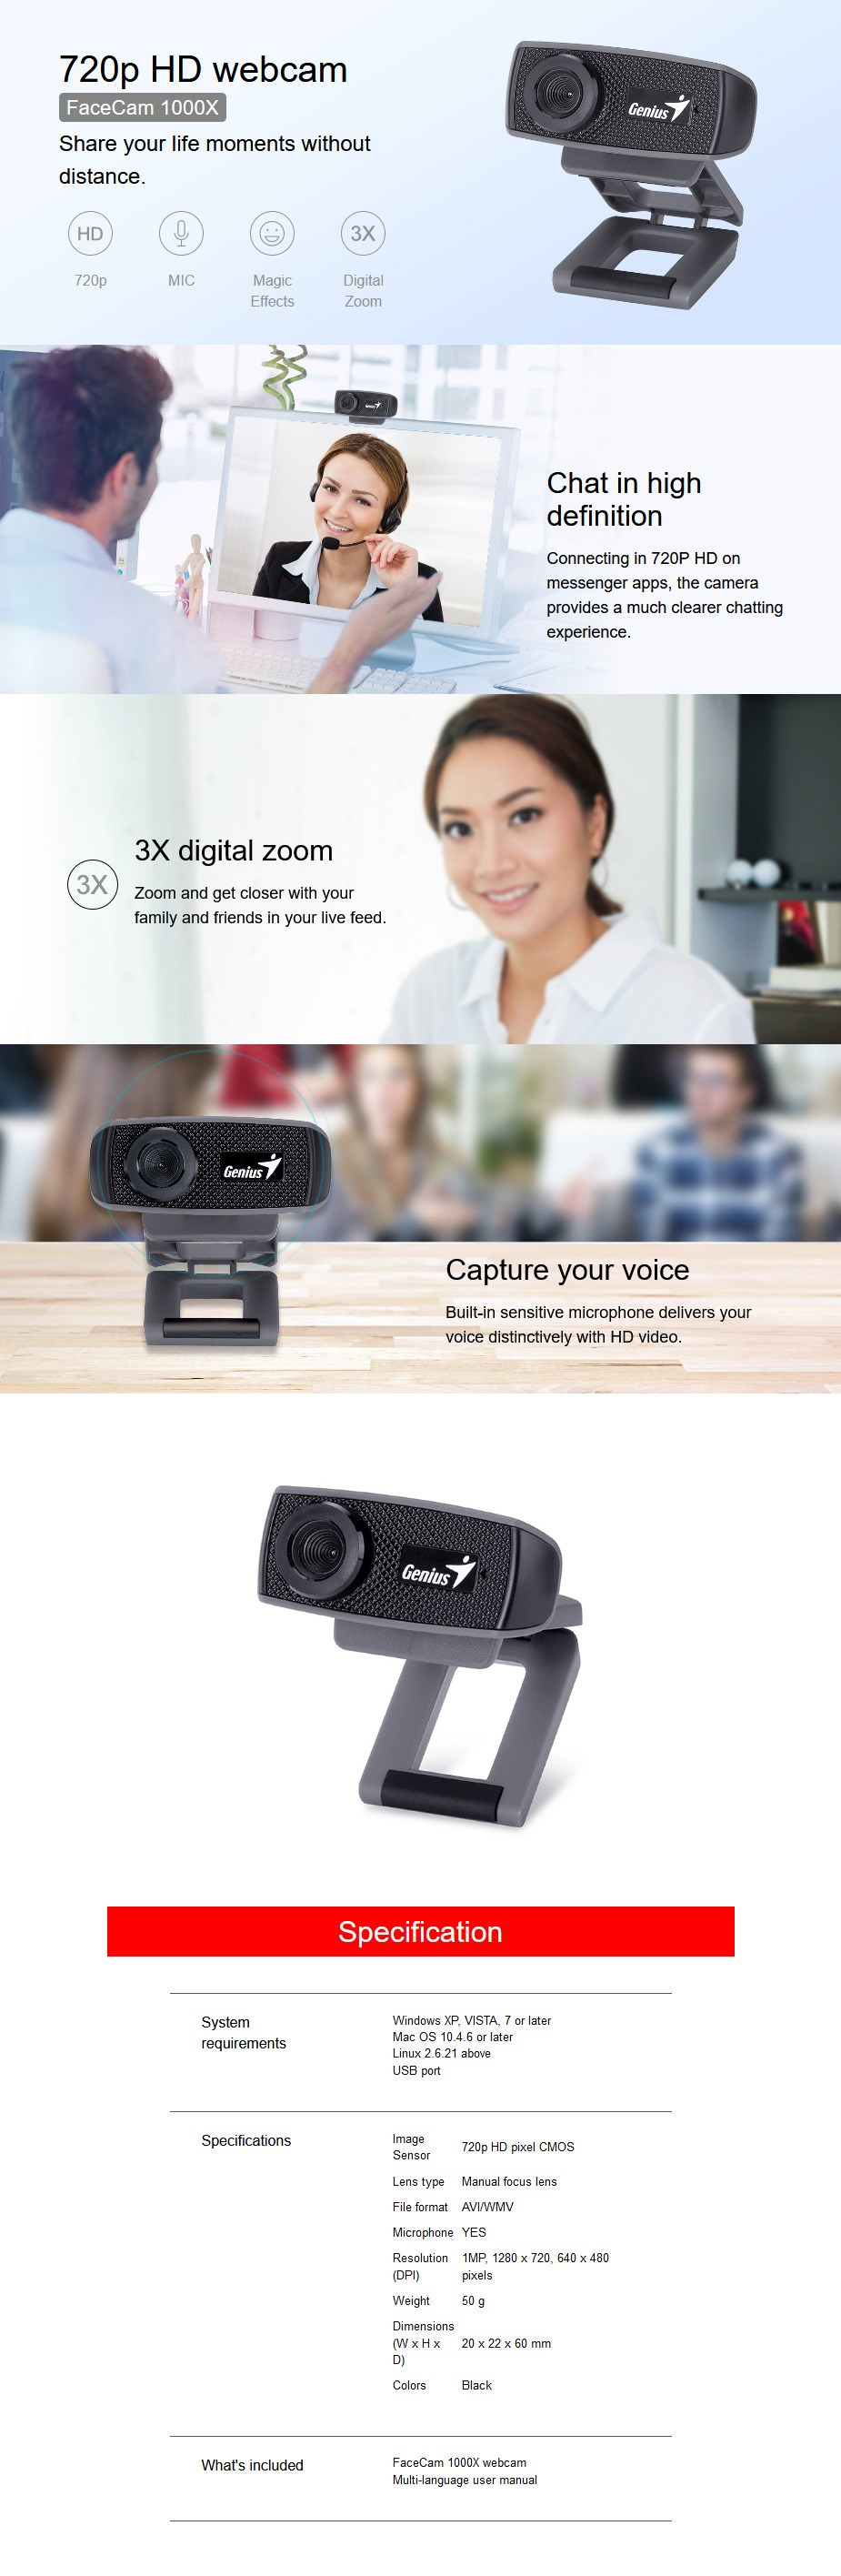 Genius FaceCam 1000X V2 720P HD USB Webcam - Overview 1